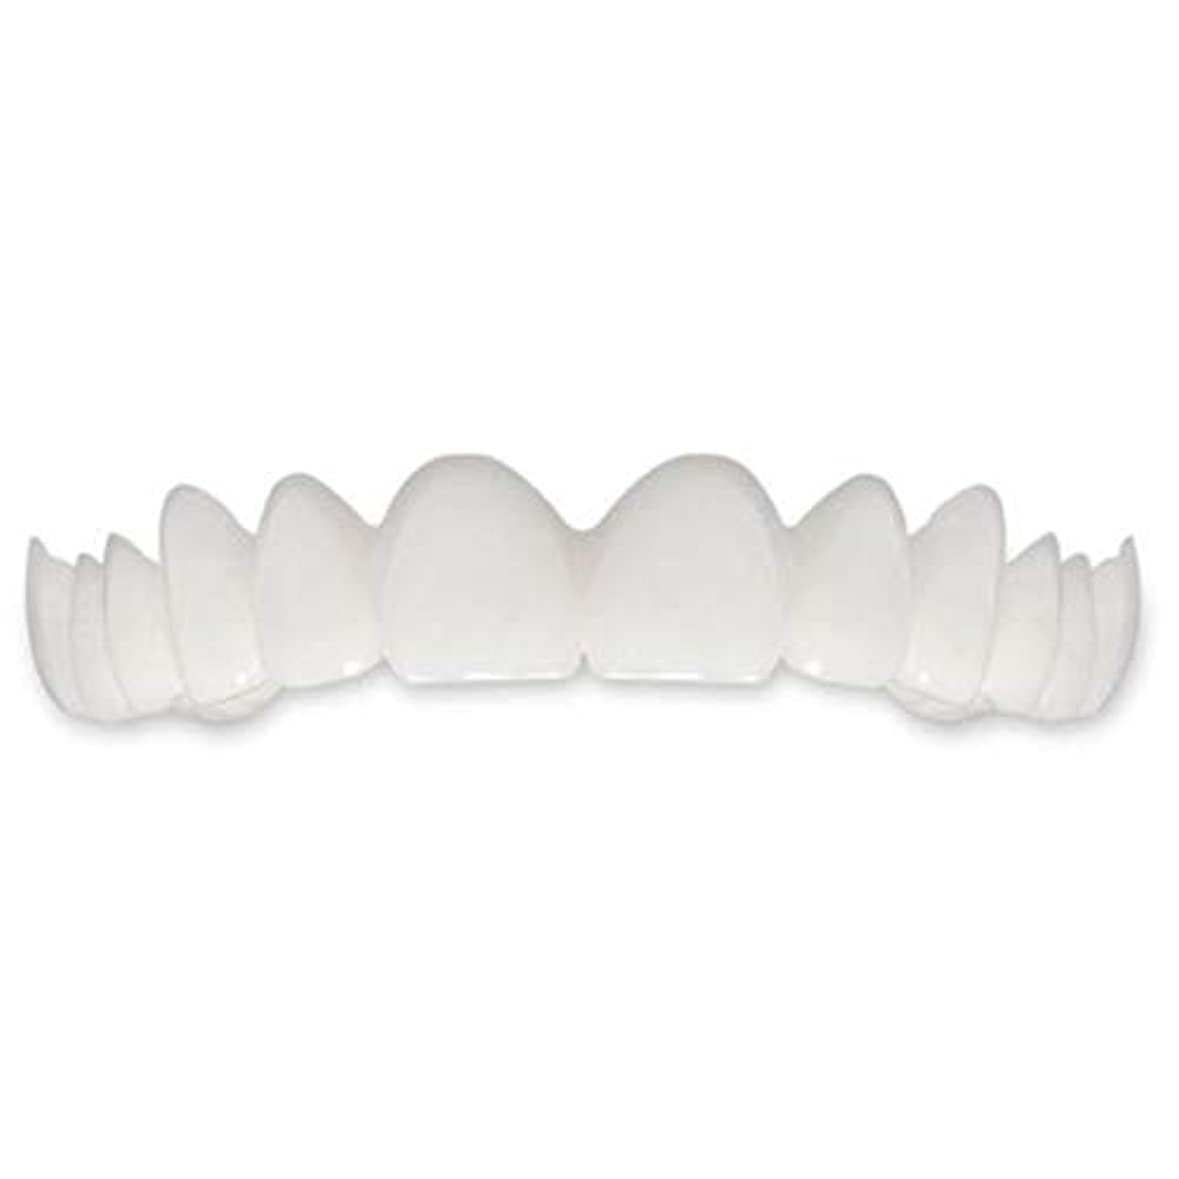 Tooth Instant Perfect Smile Flex Teeth Whitening Smile False Teeth Cover-ホワイト